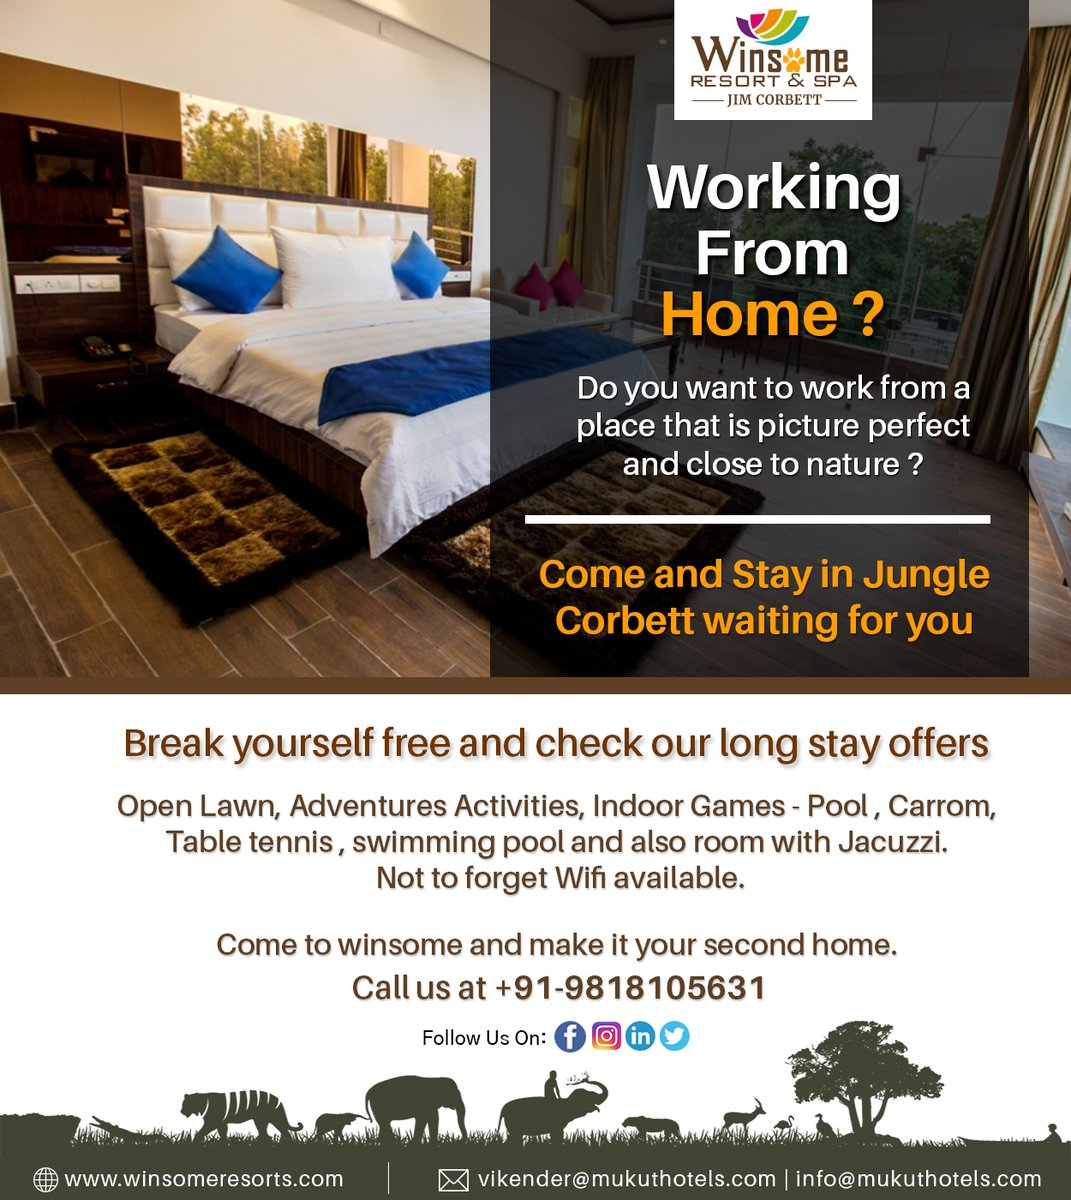 Working from Home?  Come and Stay in Jungle - Corbett waiting for you  Contact Us:- +91-9811216350  #workfromhome #safestay #longstay #office #nature #adventure #adventureactivities #corbett #jimcorbett #activities #corbettresorts #mountains #natureview #workwithview #travellers https://t.co/jBAQUW8A3x